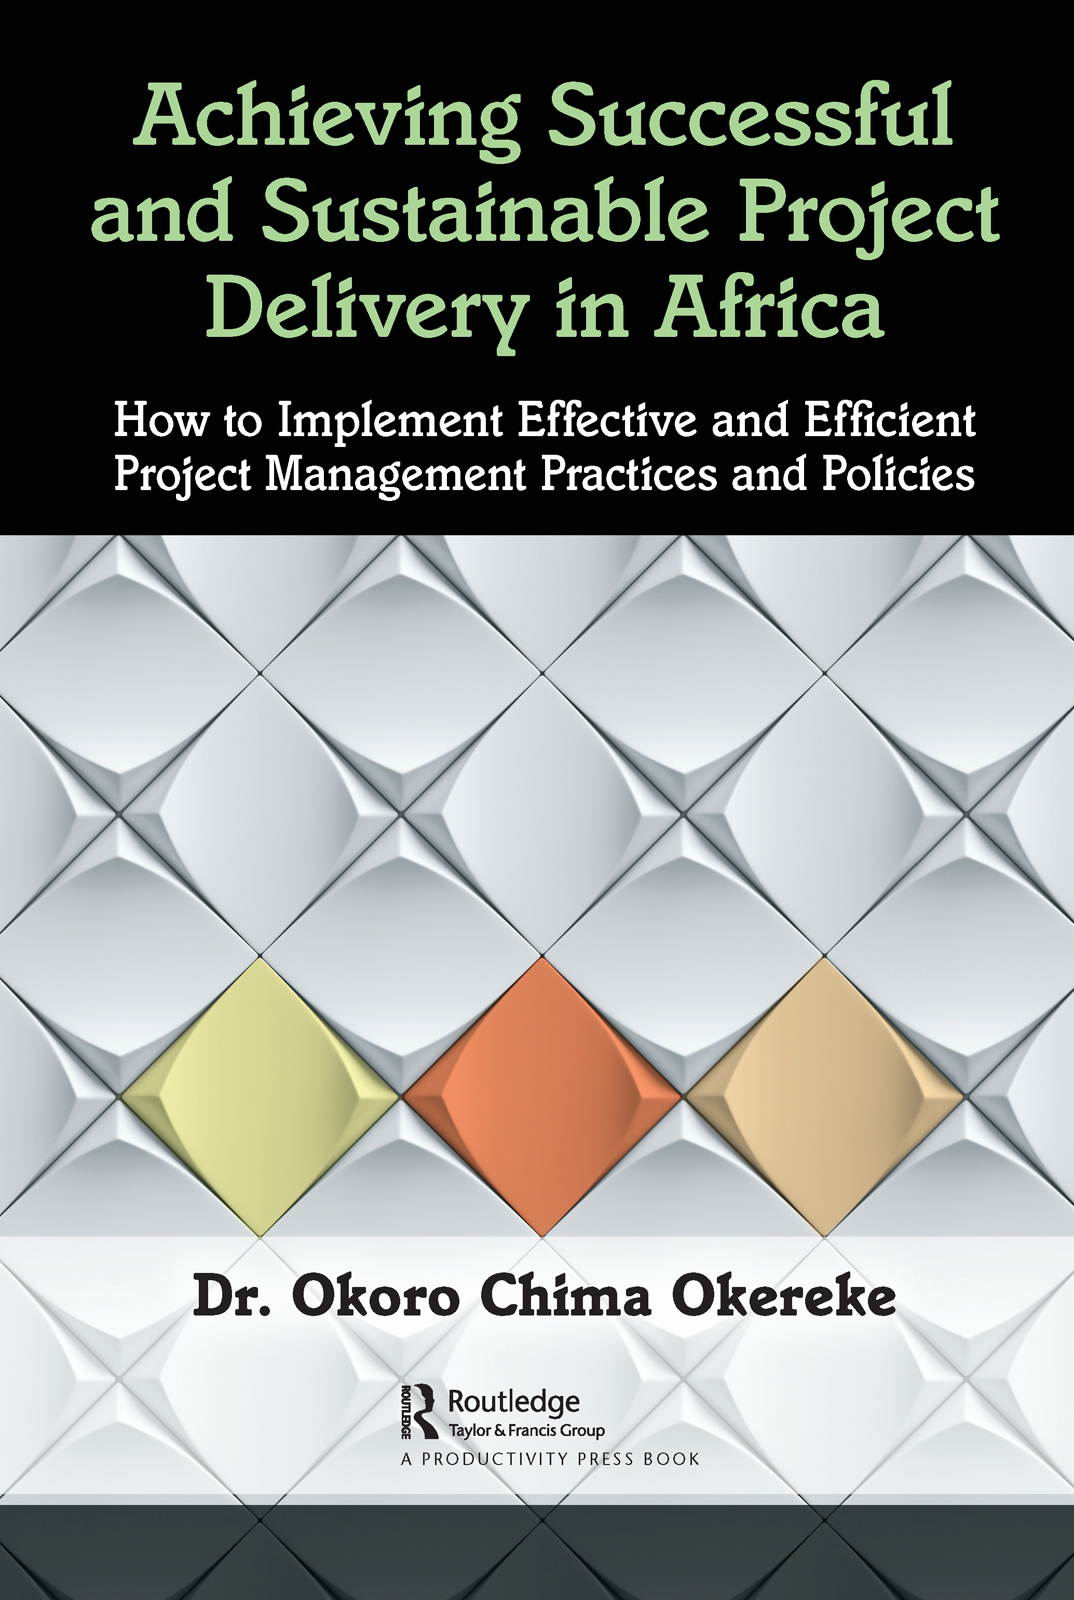 Achieving Successful and Sustainable Project Delivery in Africa